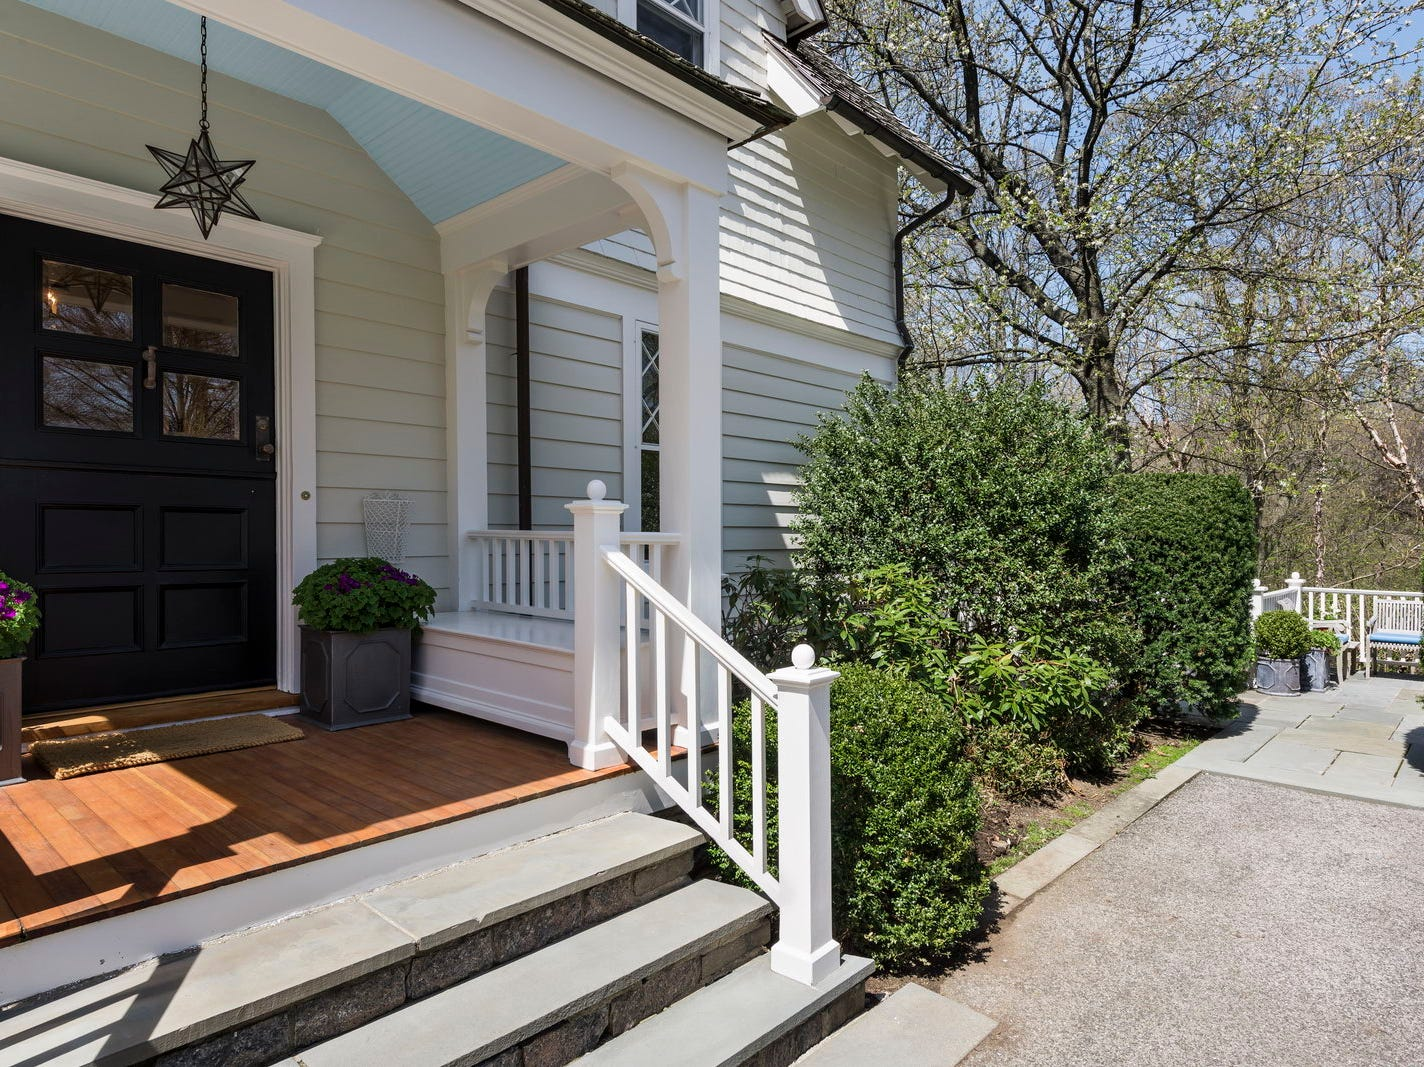 Famed aviation pioneer Ruth Rowalnd Nichols lived in this Rye home, now on the market. Built in 1880, the property is on  3.3 acres and also includes a carriage house.